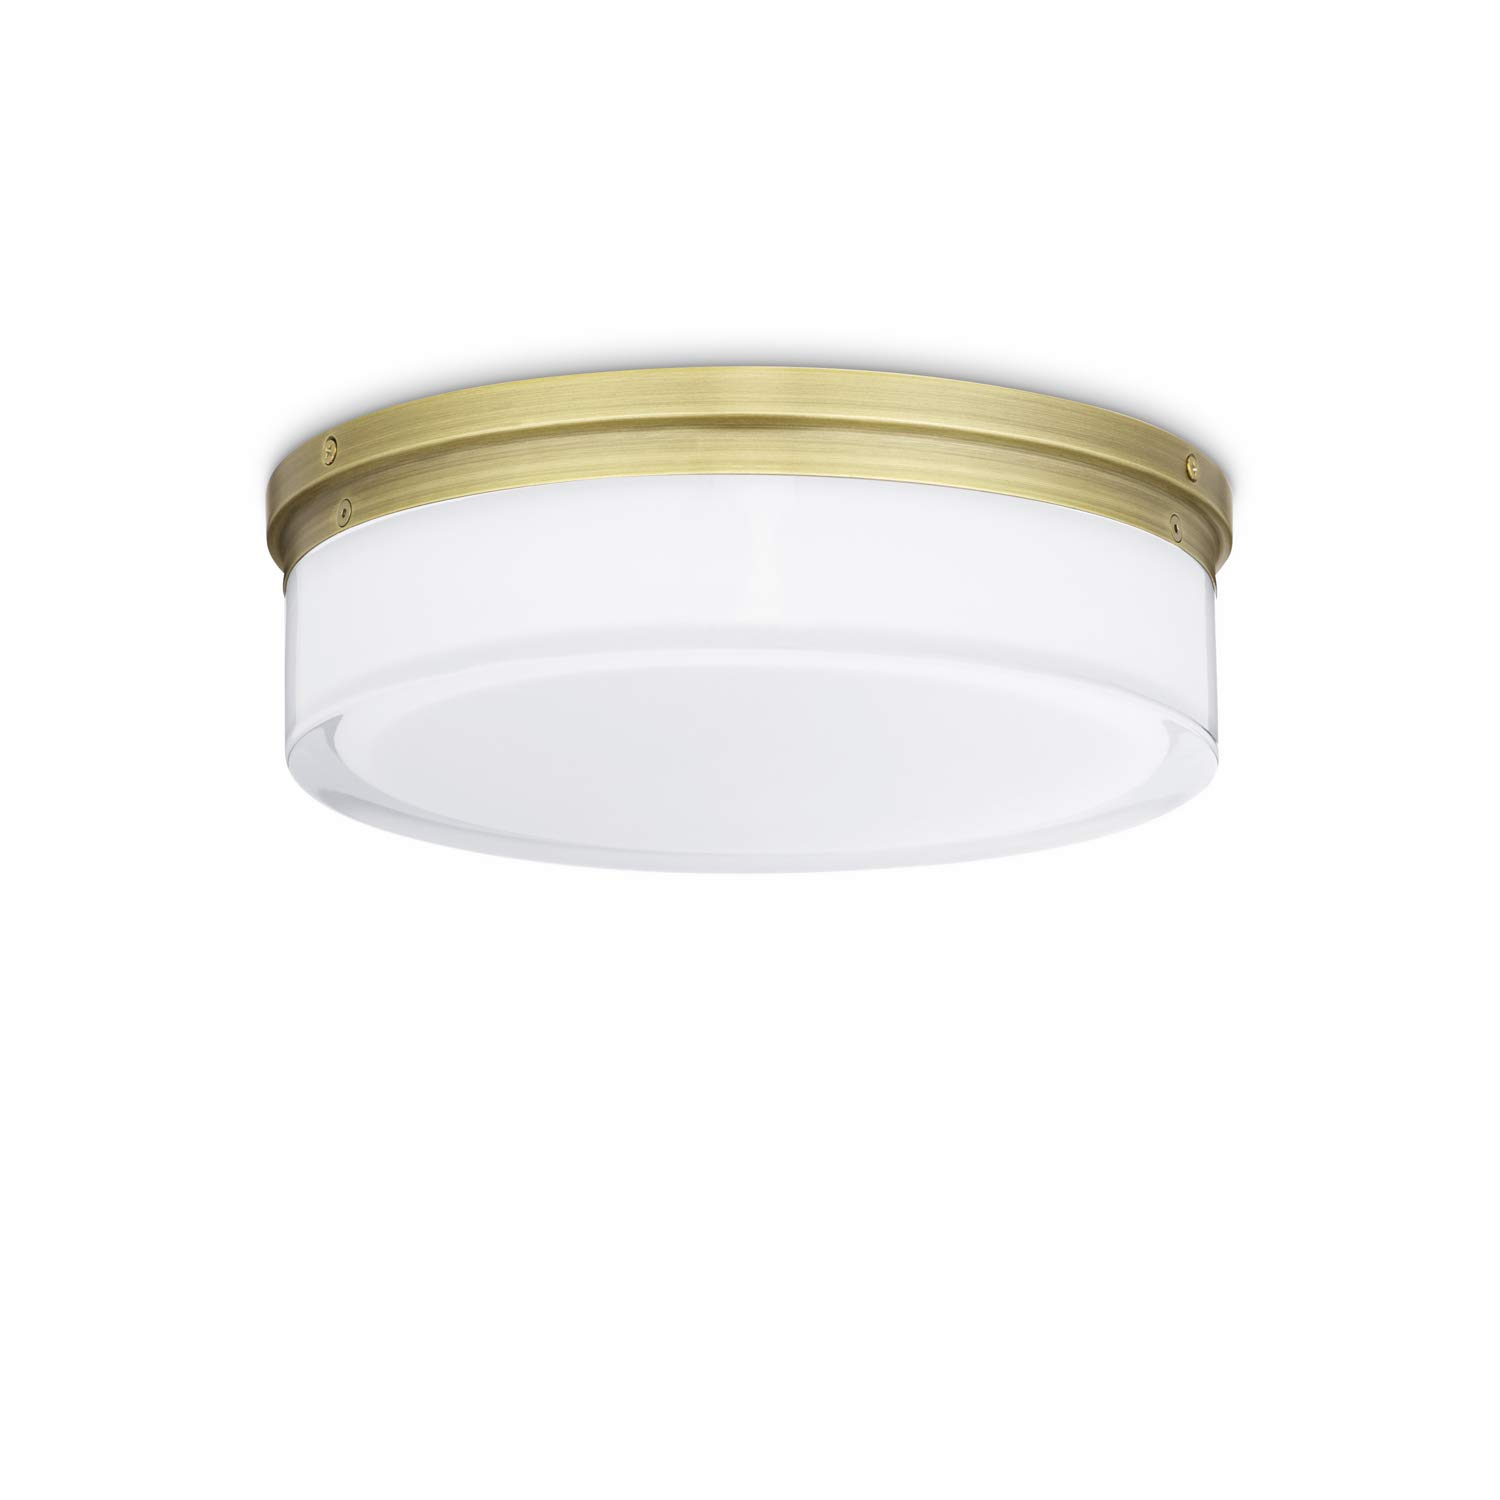 Brass flush mount ceiling light 11 inch glass led round fixture dimmable damp located for vanity bathroom bedroom kitchen living room